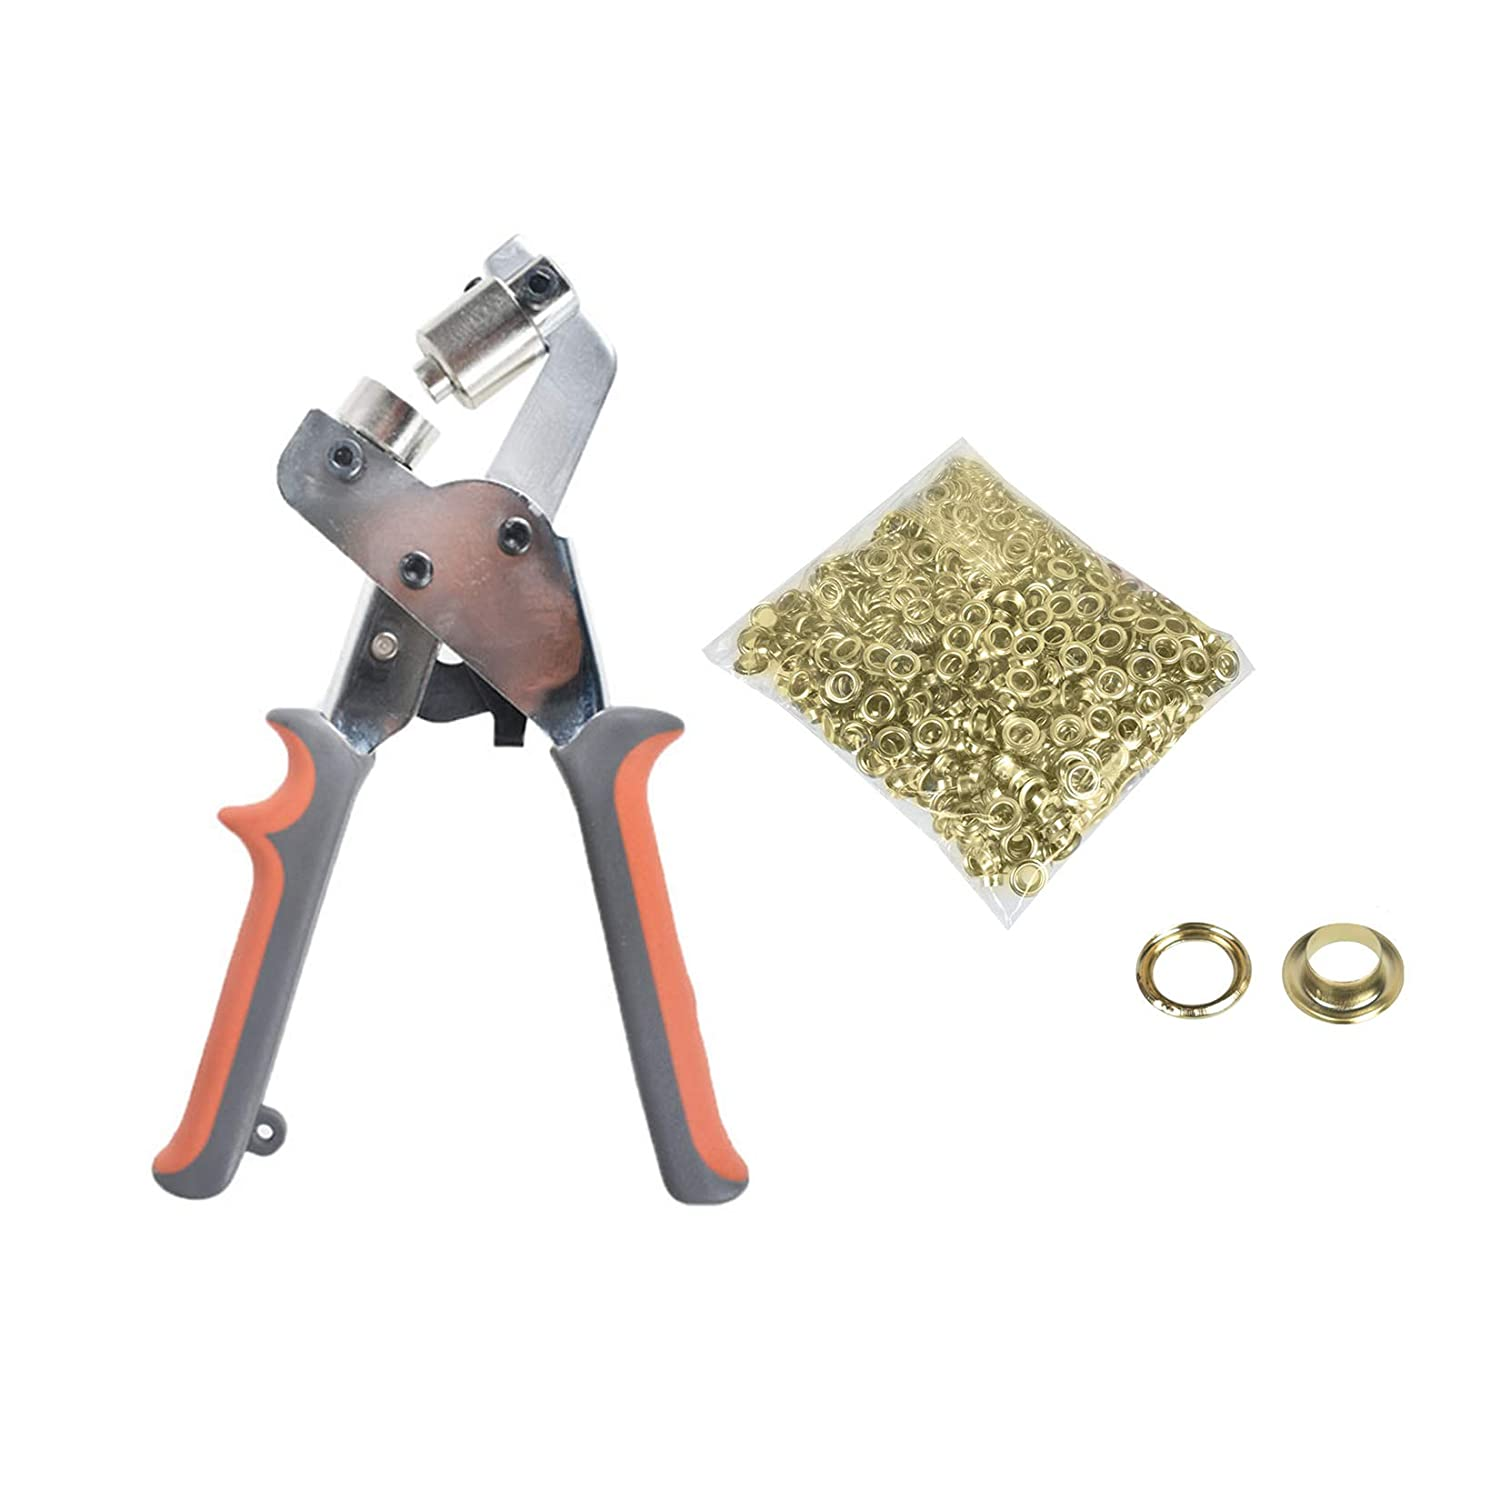 findmall 0.43 Inch Handheld Hand Press Portable Grommet Machine Hole Punch Tool W/ 500 Gold Grommets